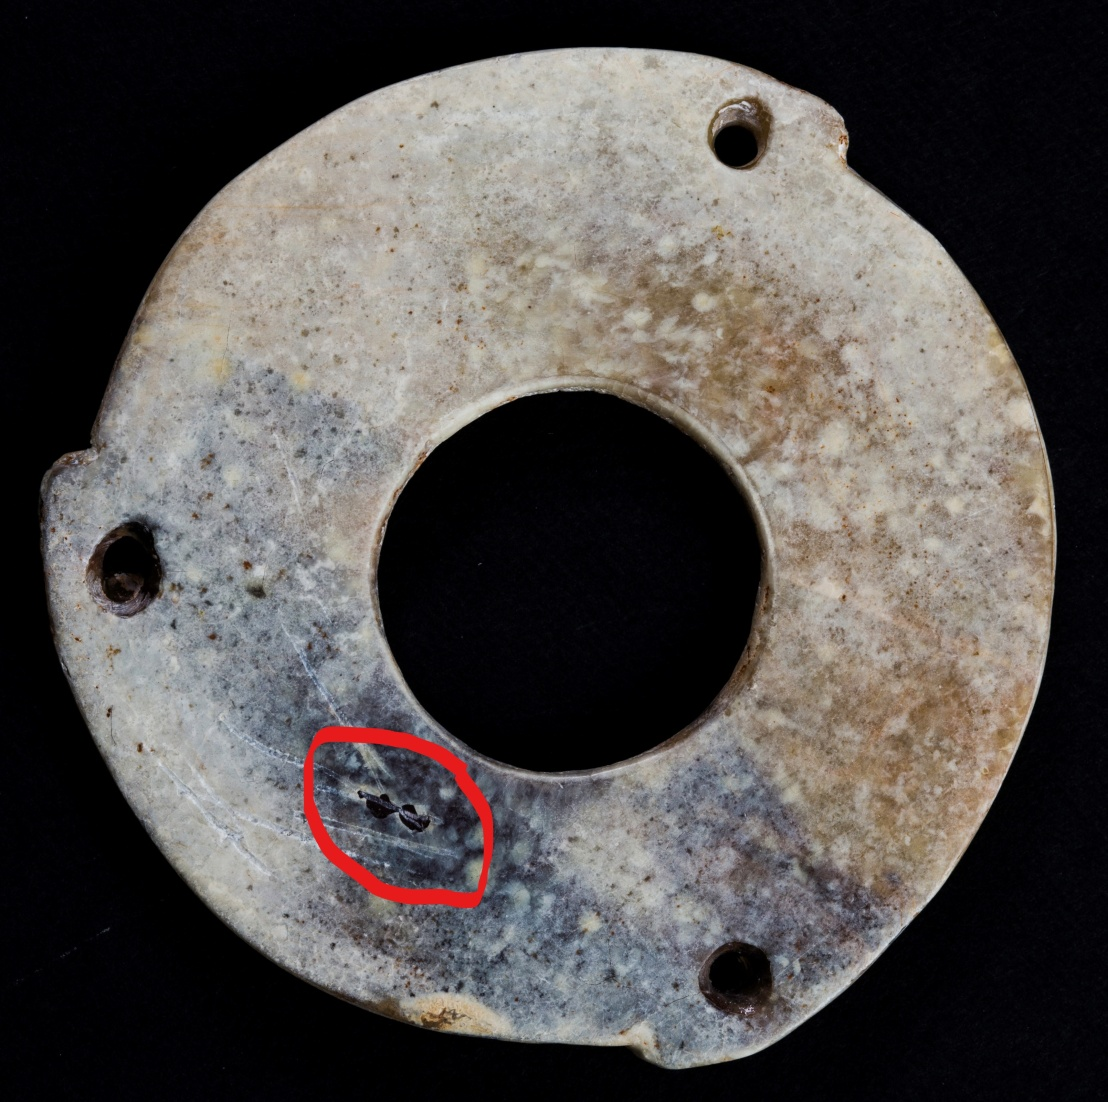 The backside of the Liangzhu disc.